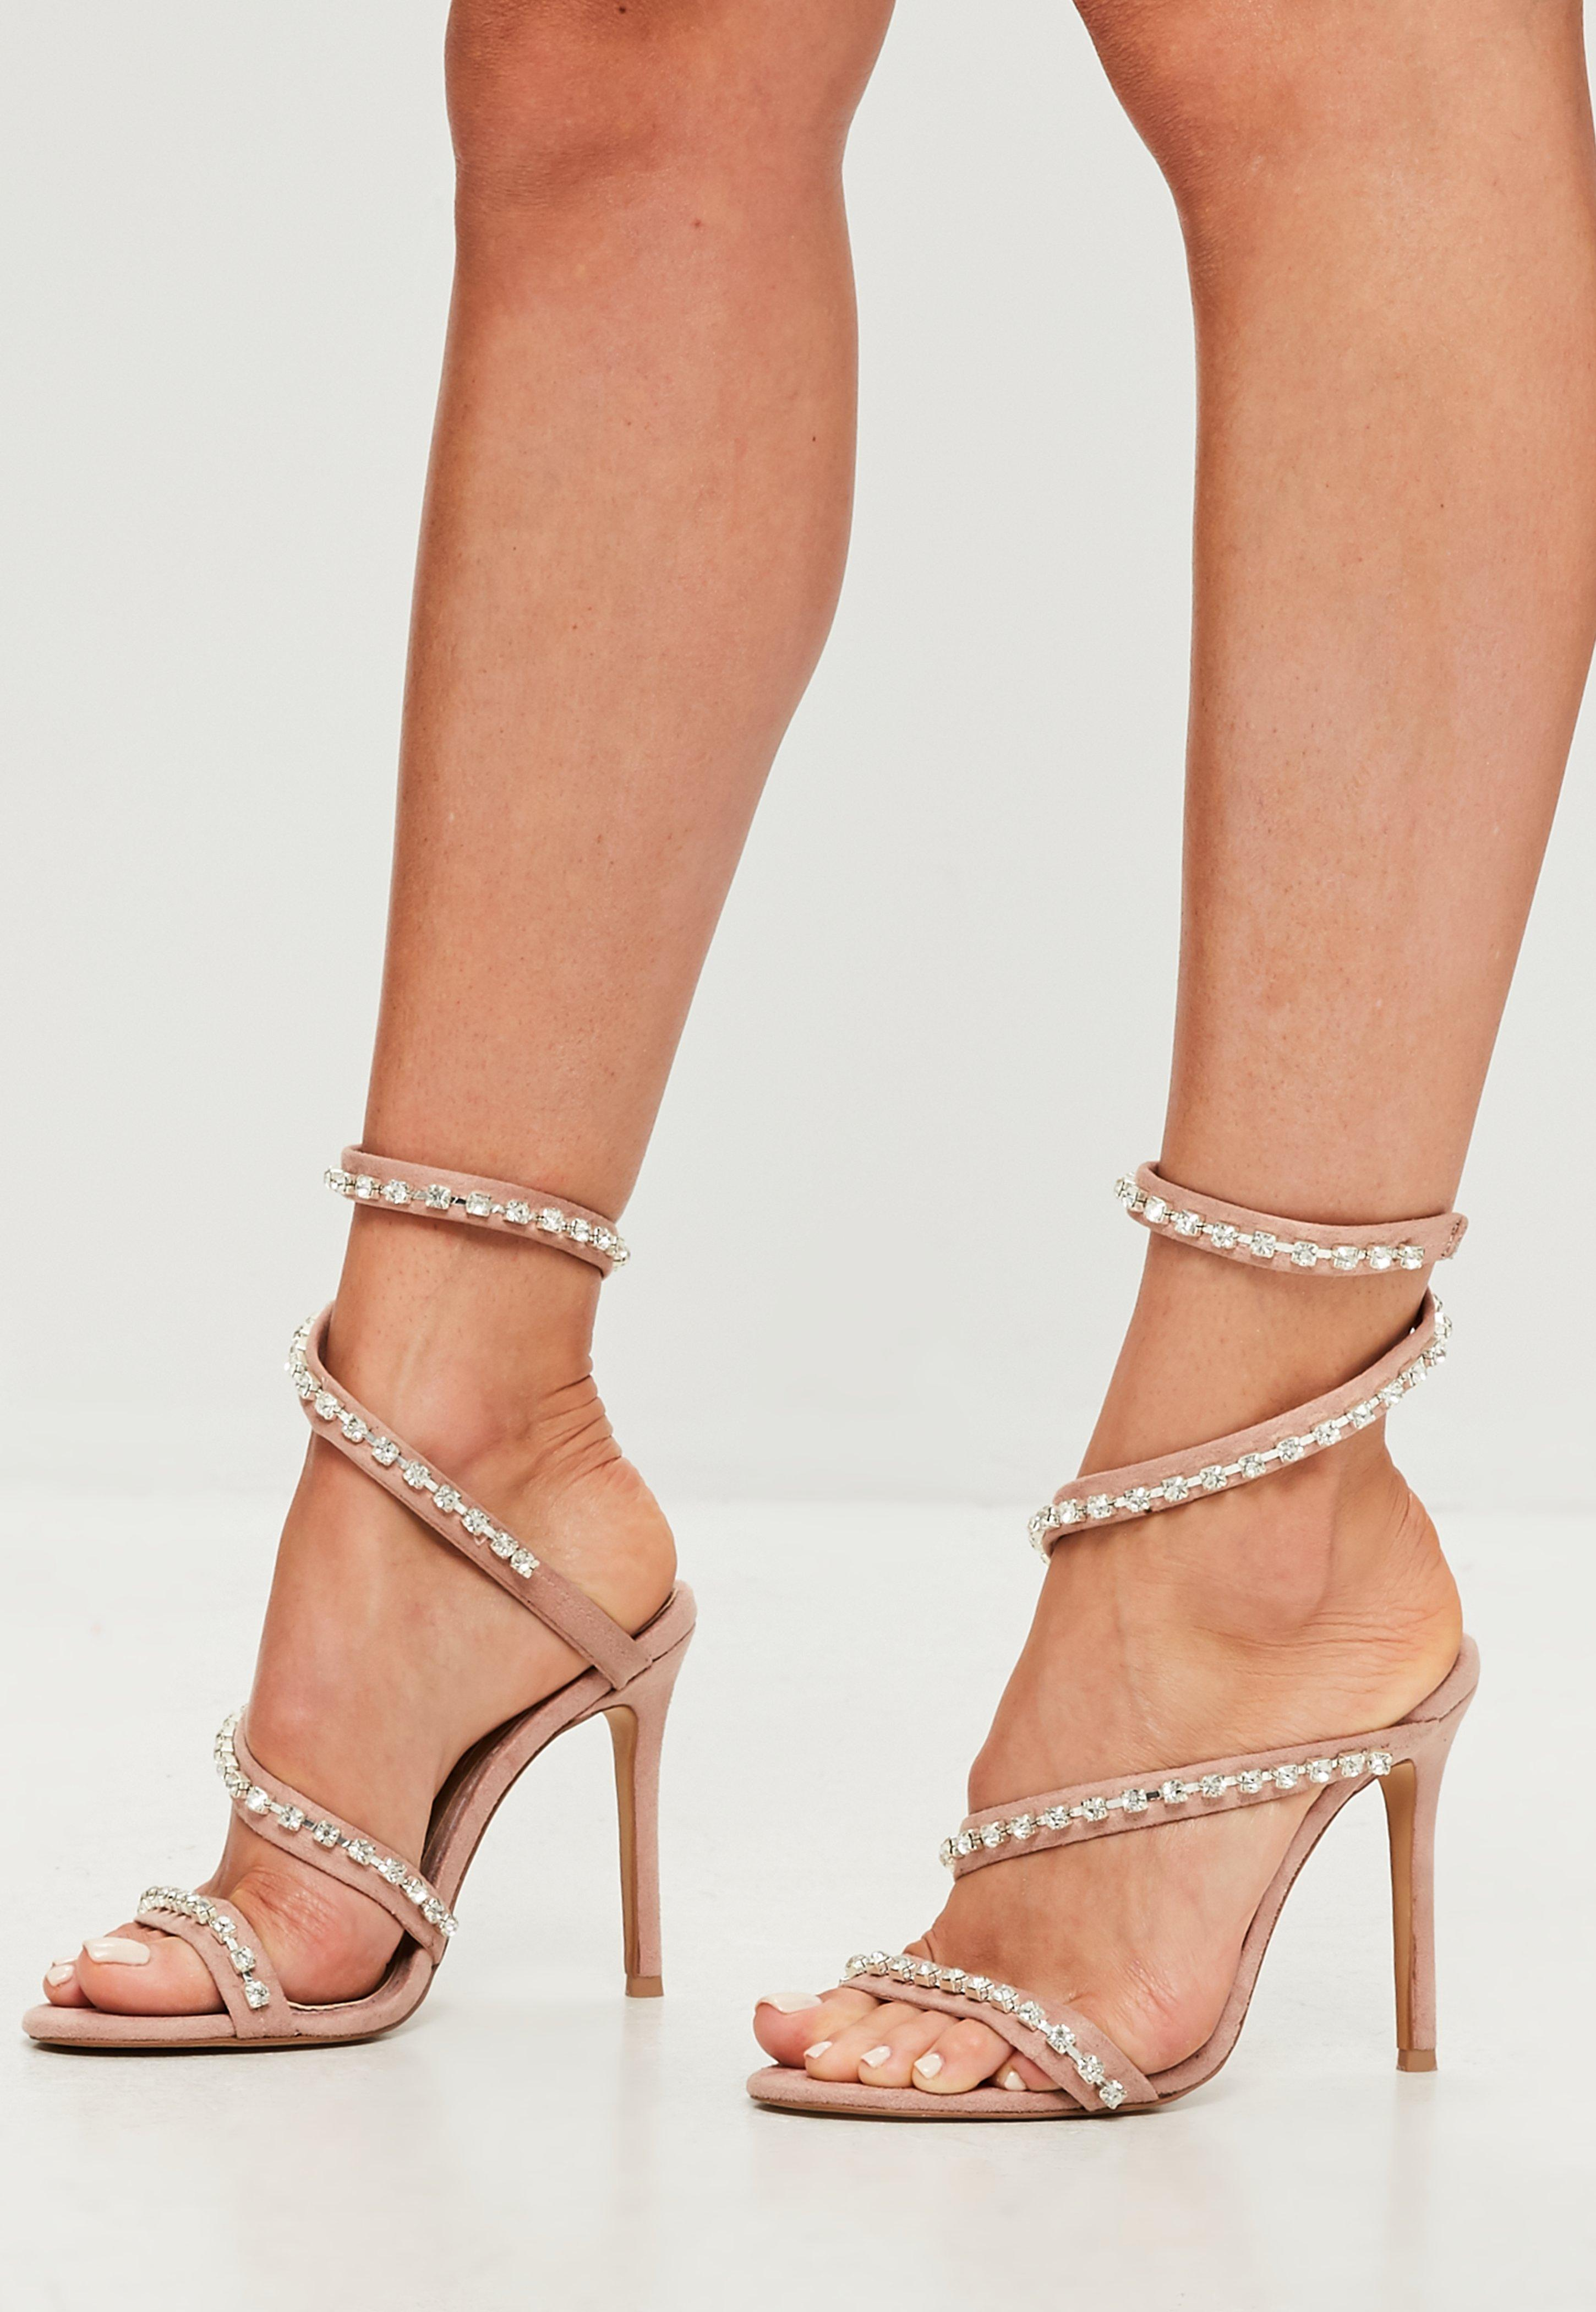 High Heel Nude Sandals yTuvZAPN